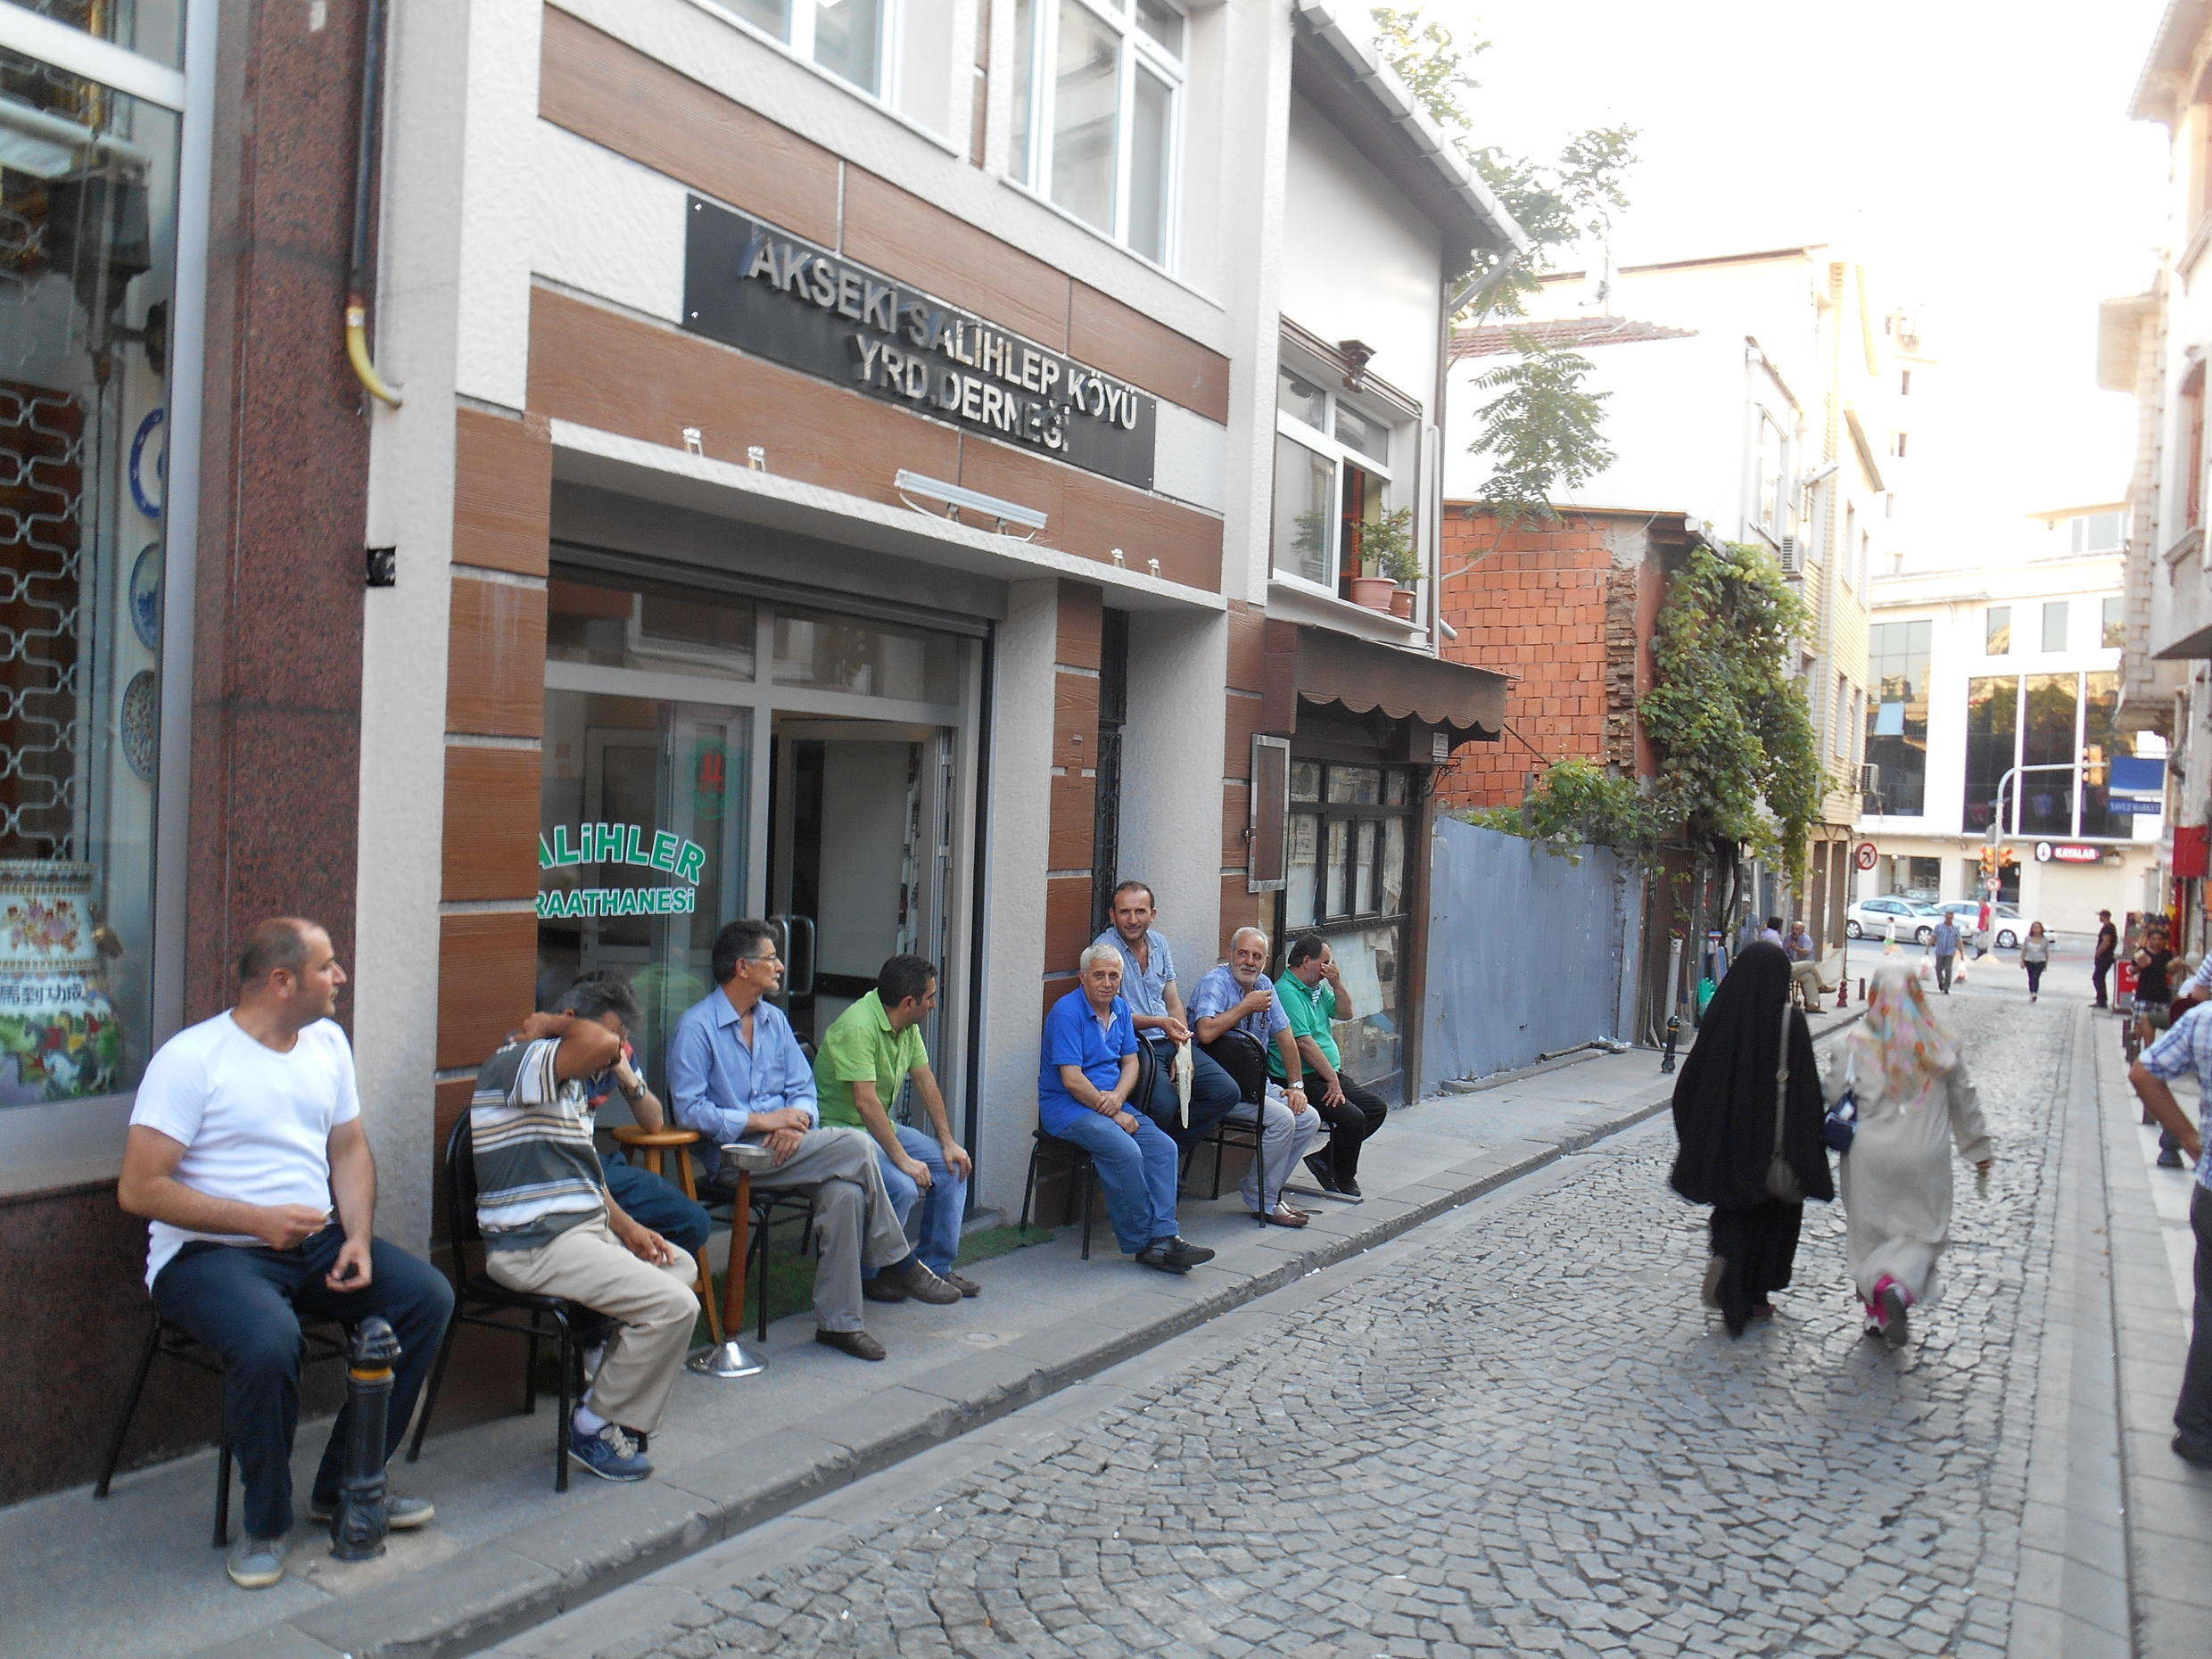 Men sit outside a cafe in Kasimpasa, the home area of Recep Tayyip Erdogan